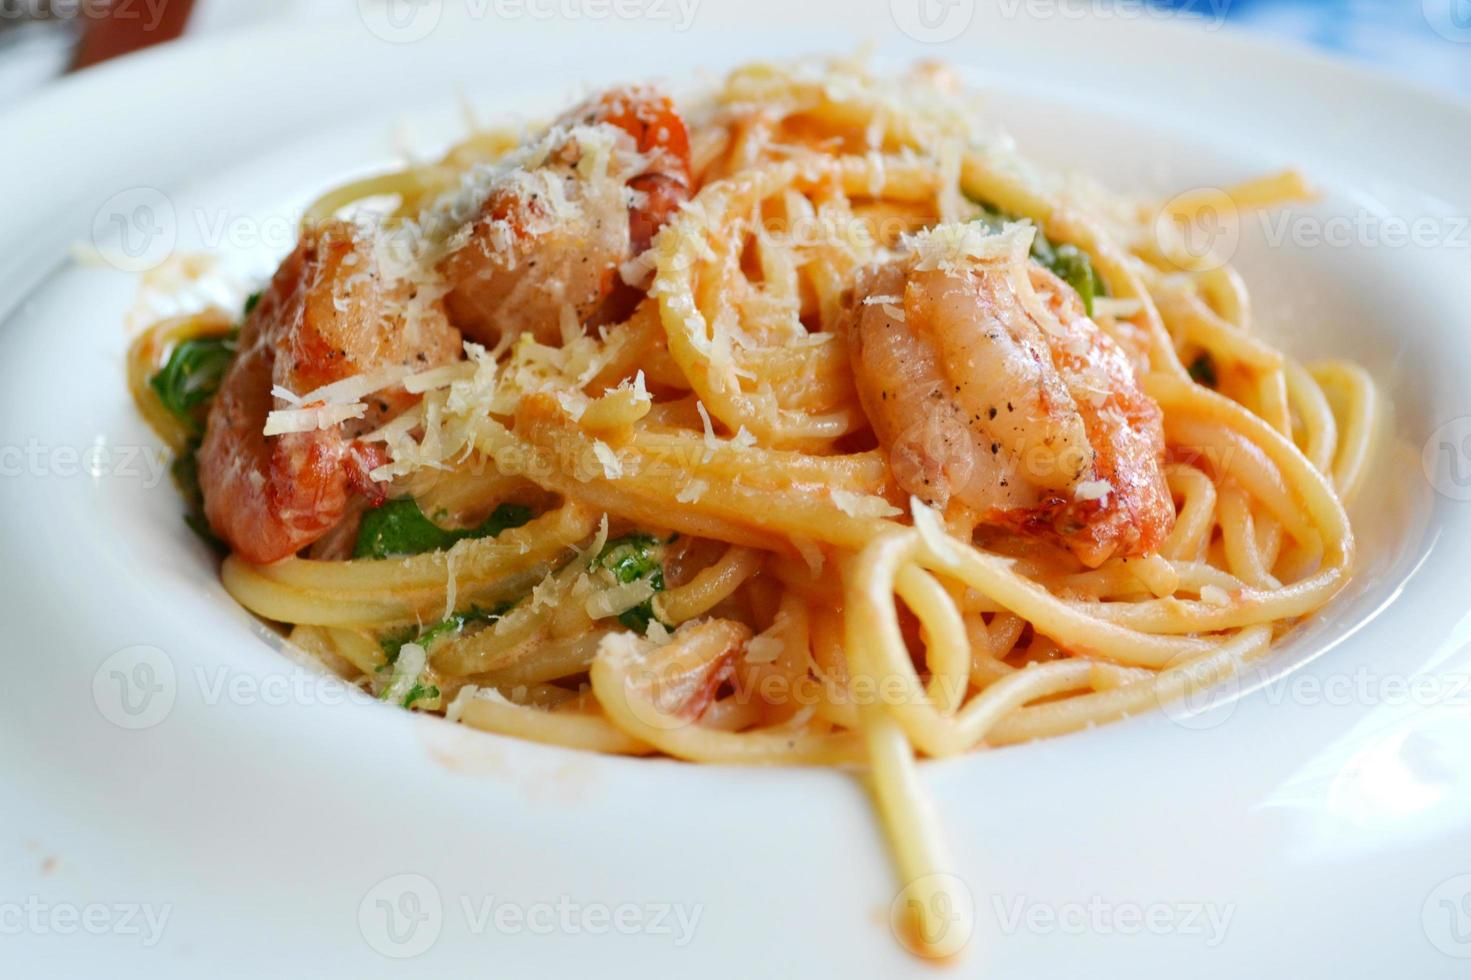 Delicious pasta spaghetti with shrimps and other seafood photo